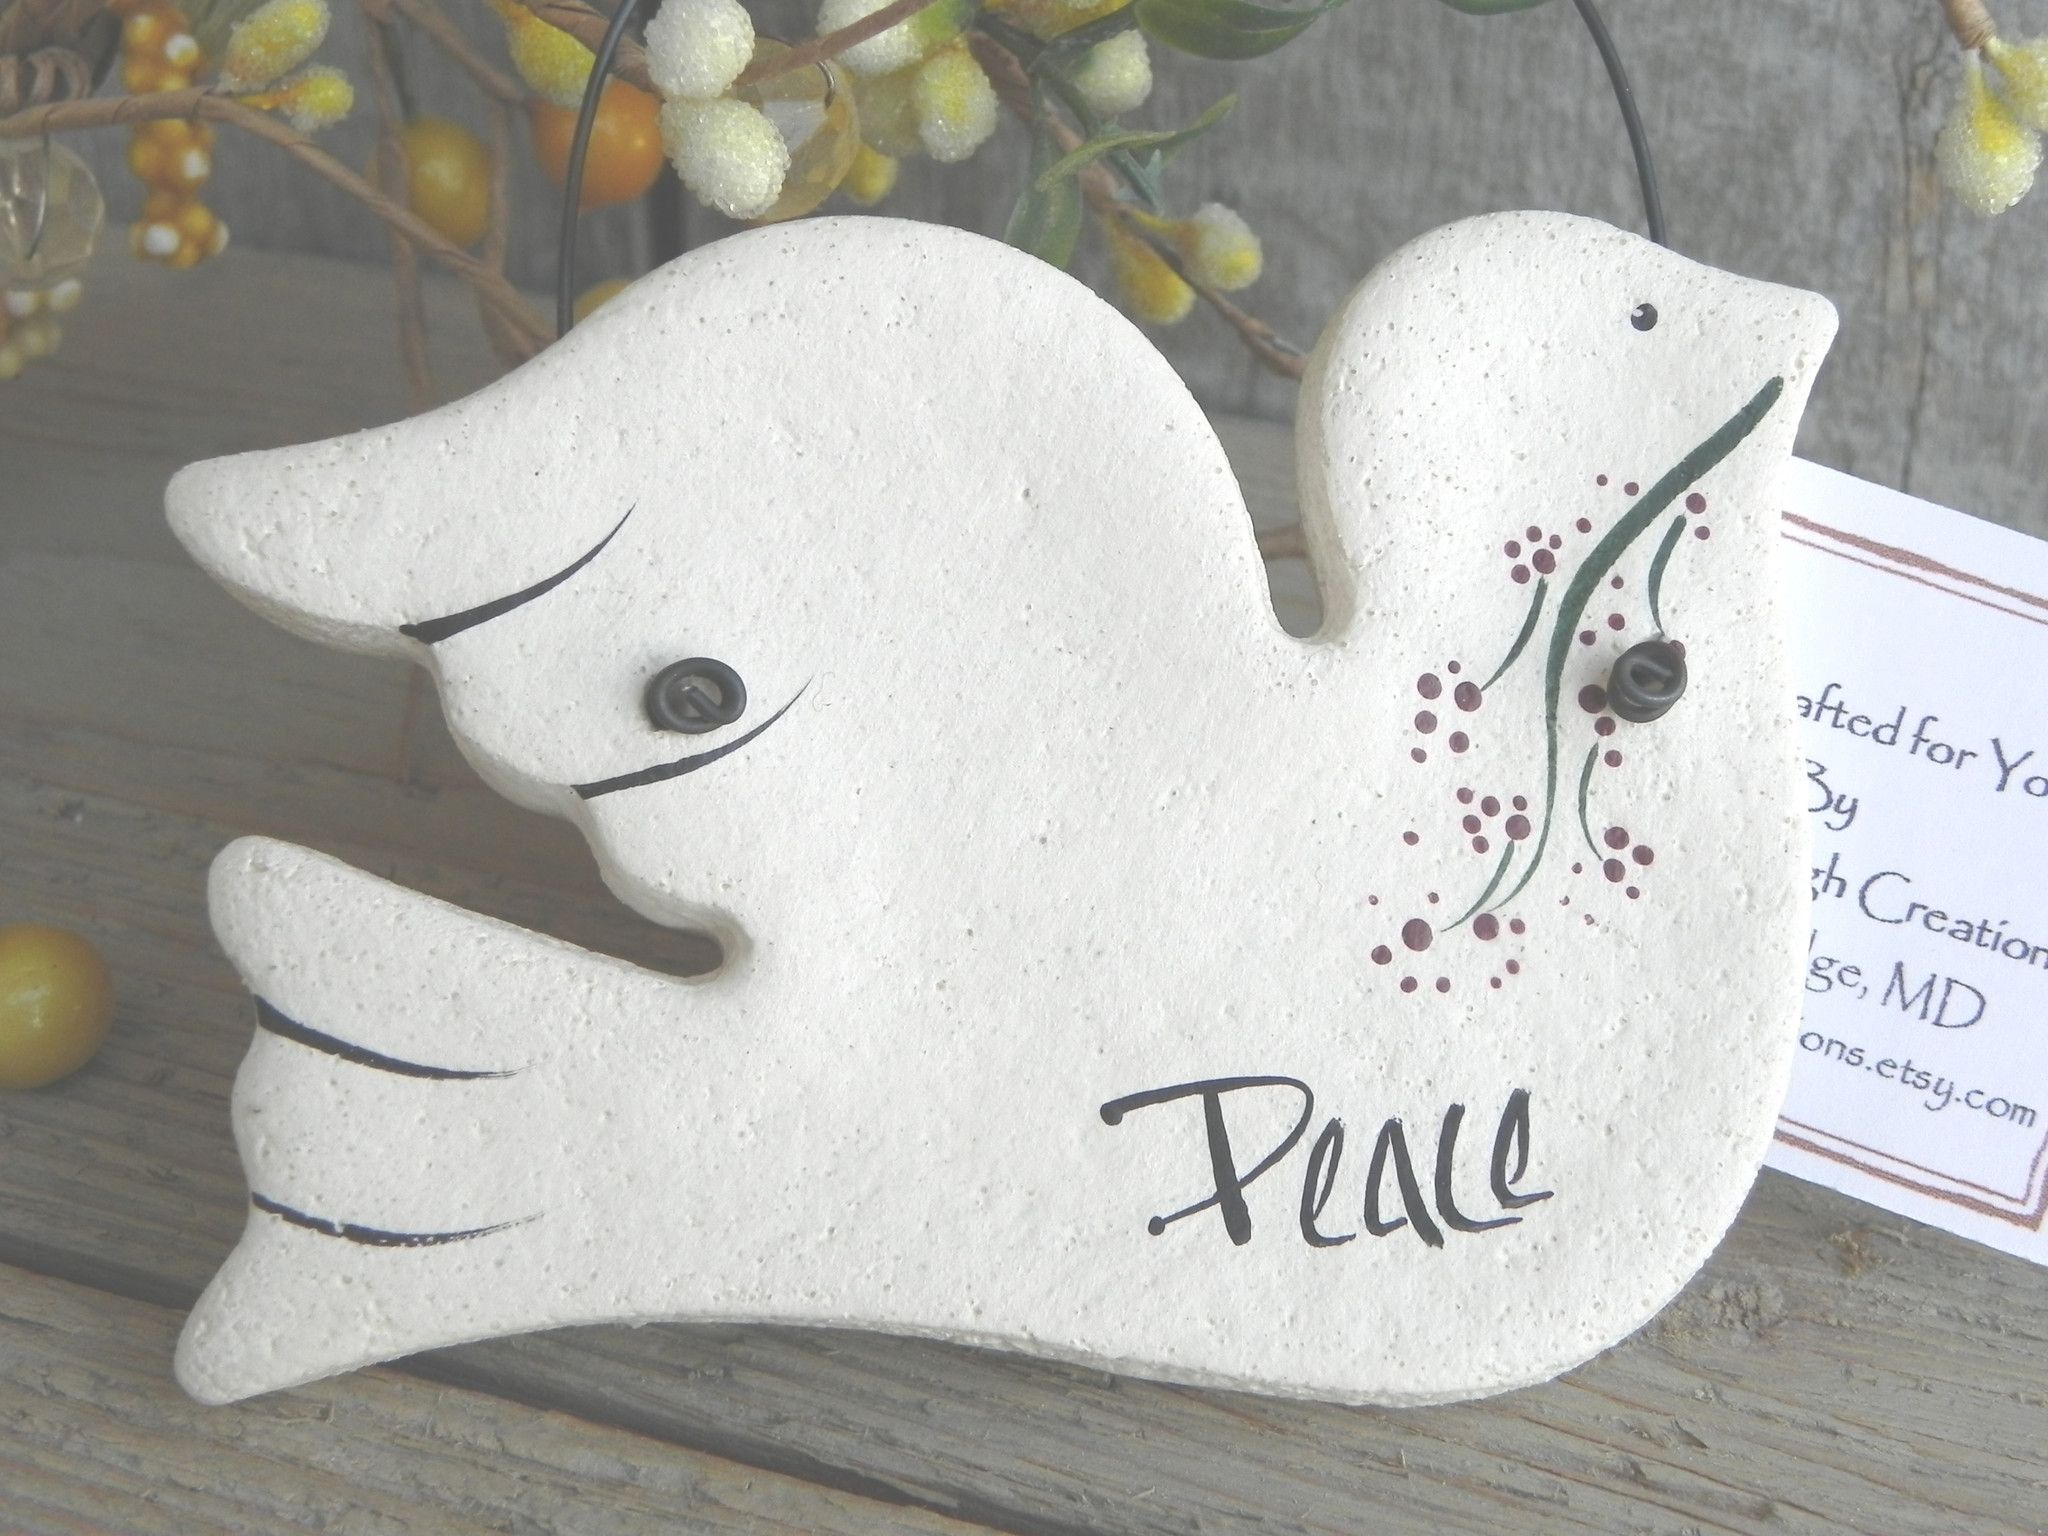 Peace dove baptism gift salt dough ornament easter christening peace dove baptism gift salt dough ornament easter christening christmas ornament negle